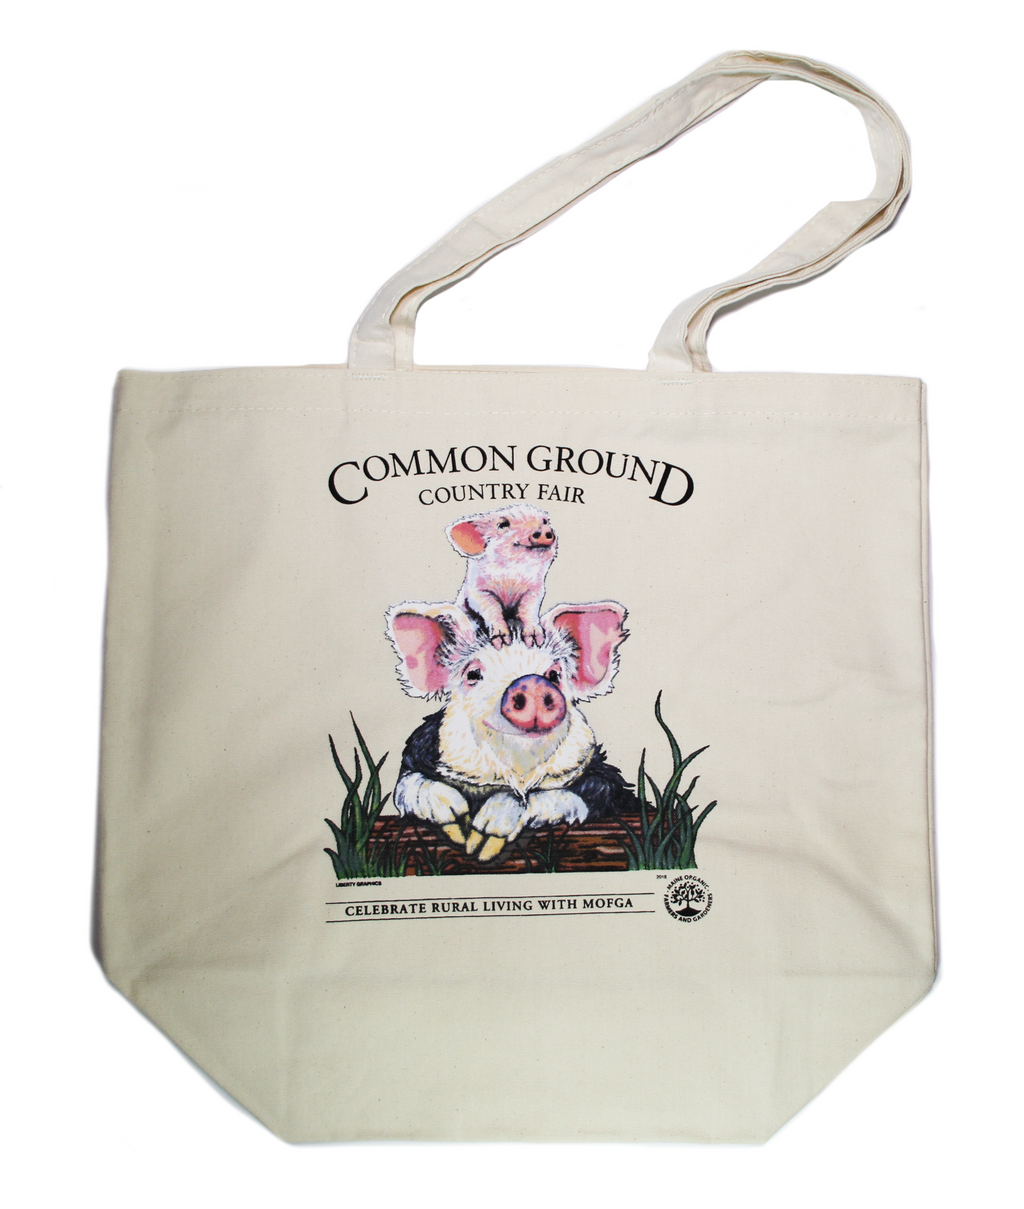 2018 Common Ground Country Fair Grocery Tote Bag